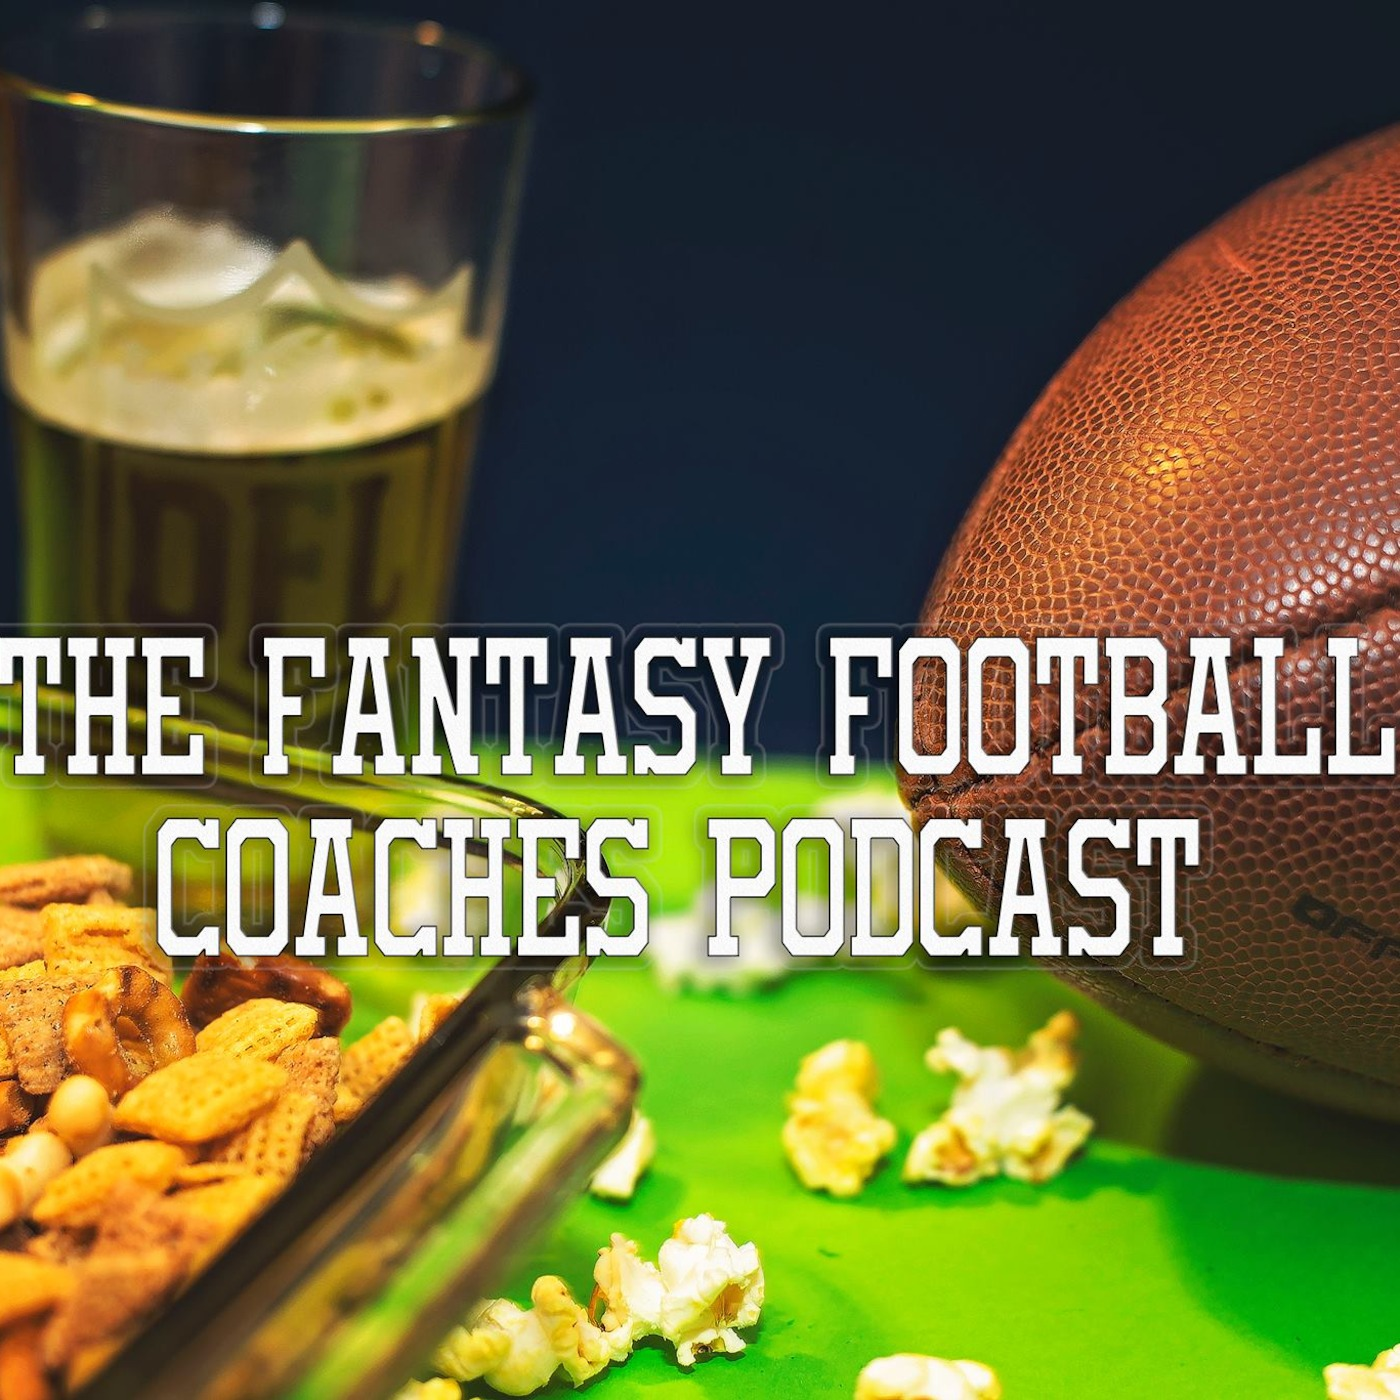 Fantasy Football Coaches Podcast